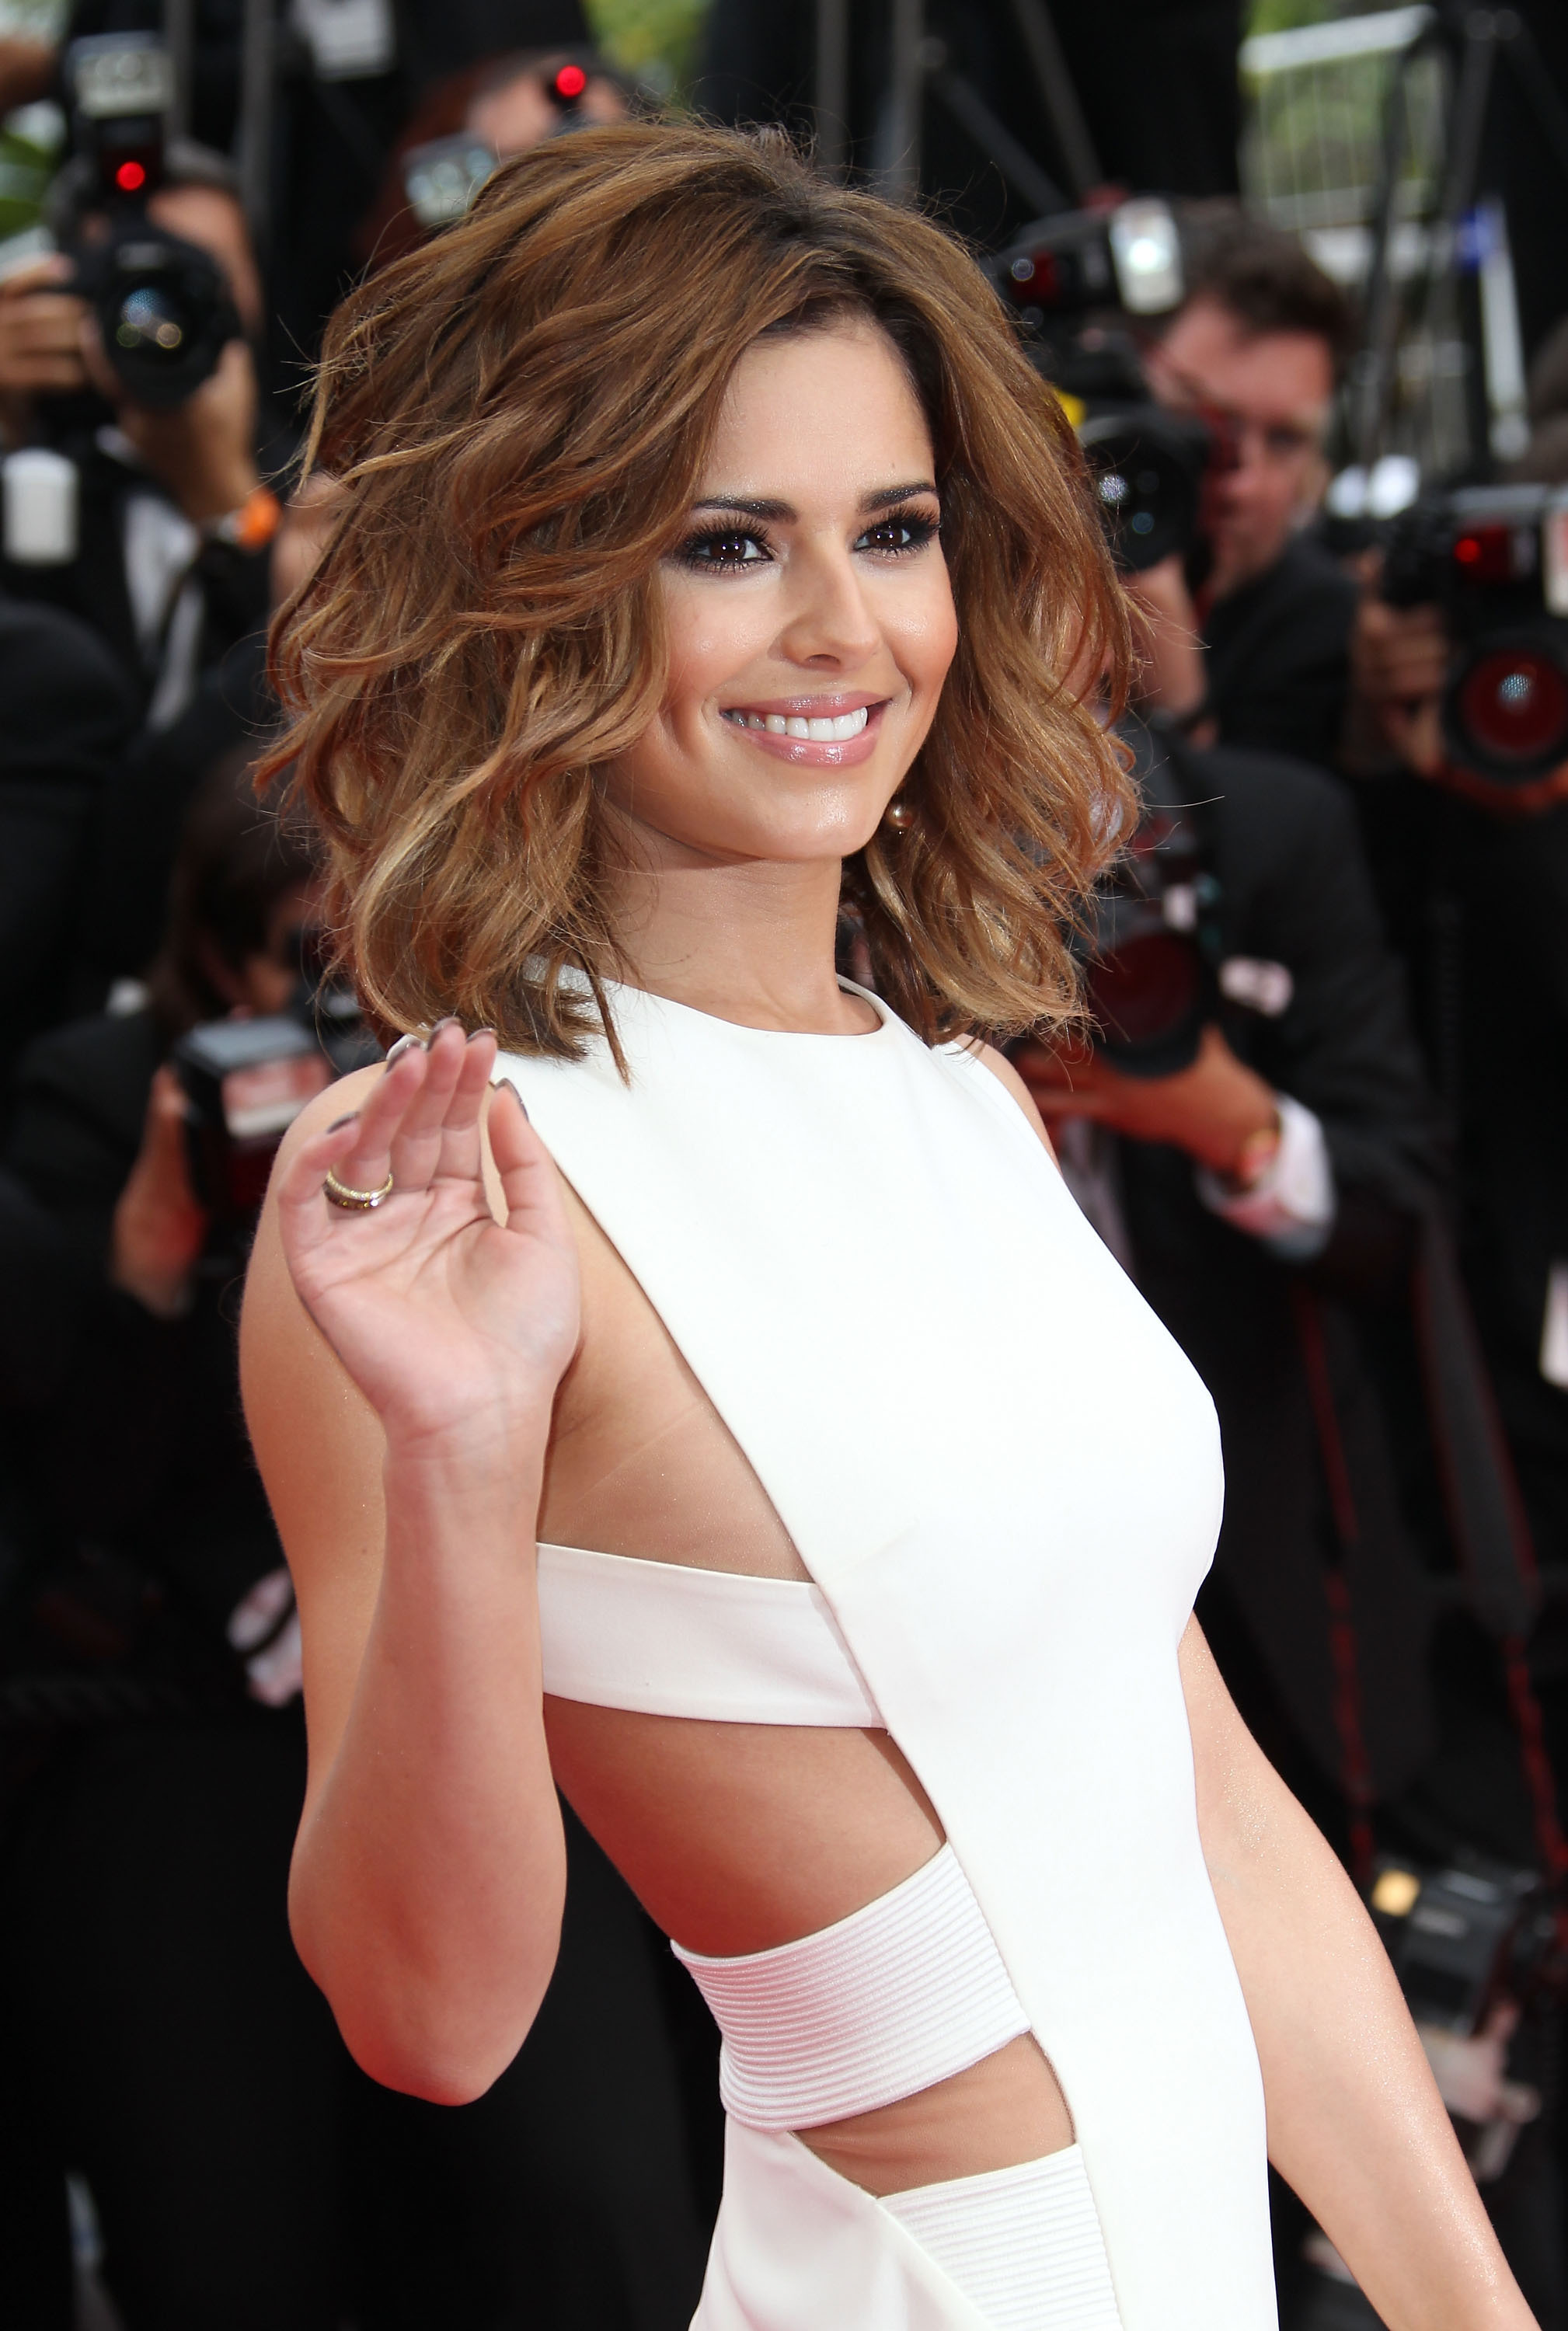 Cheryl cole white dress HD Wallpaper